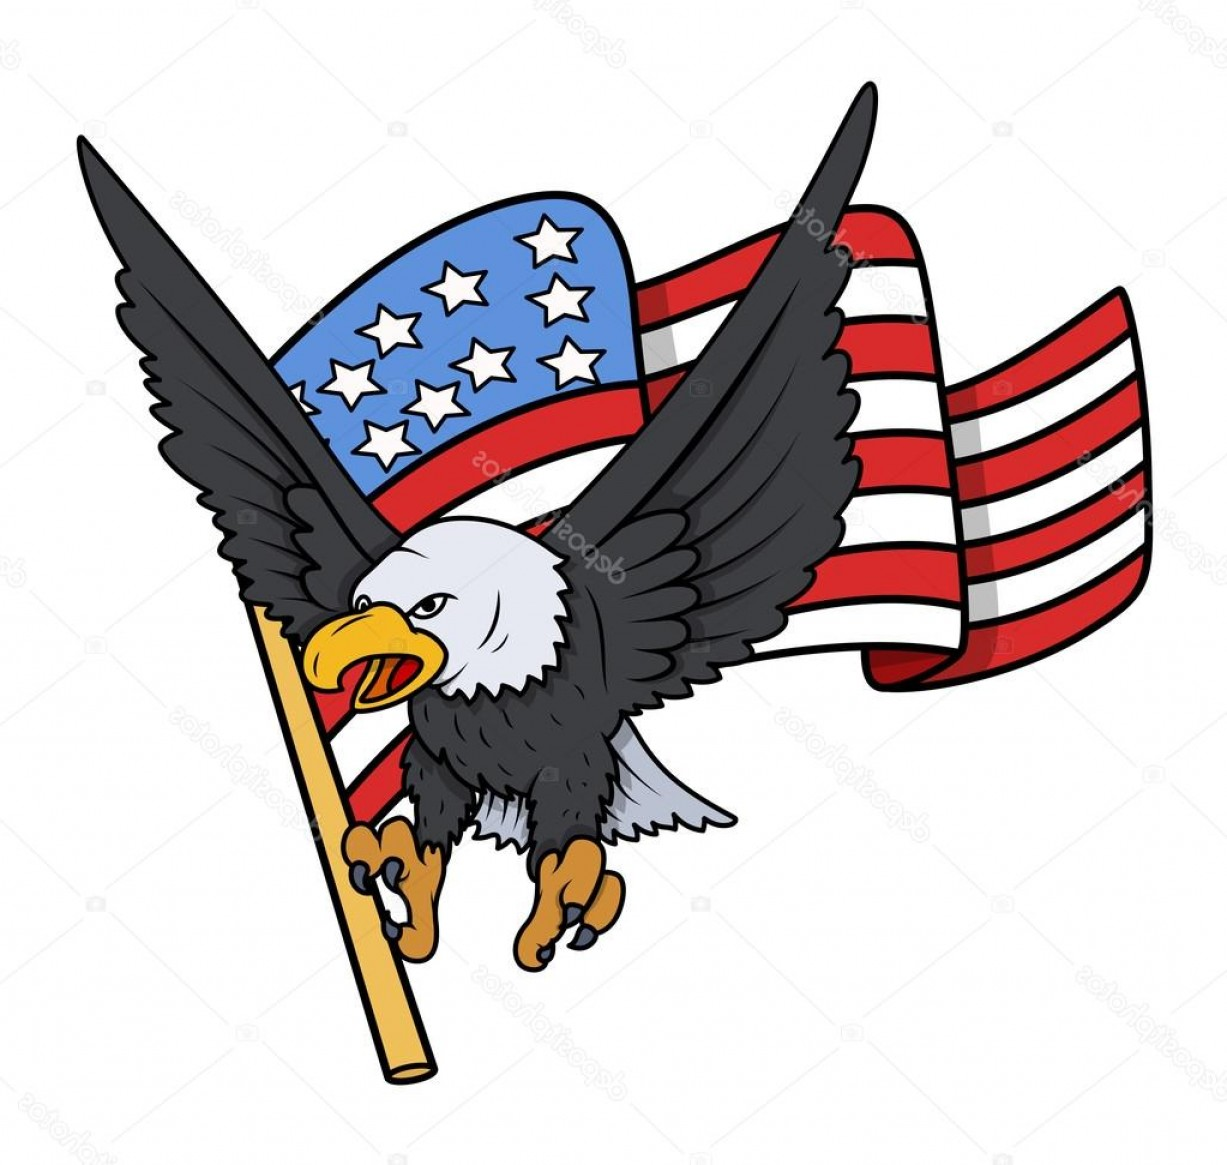 Patriotic Bald Eagle Vector: Stock Illustration Bald Eagle With American Flag